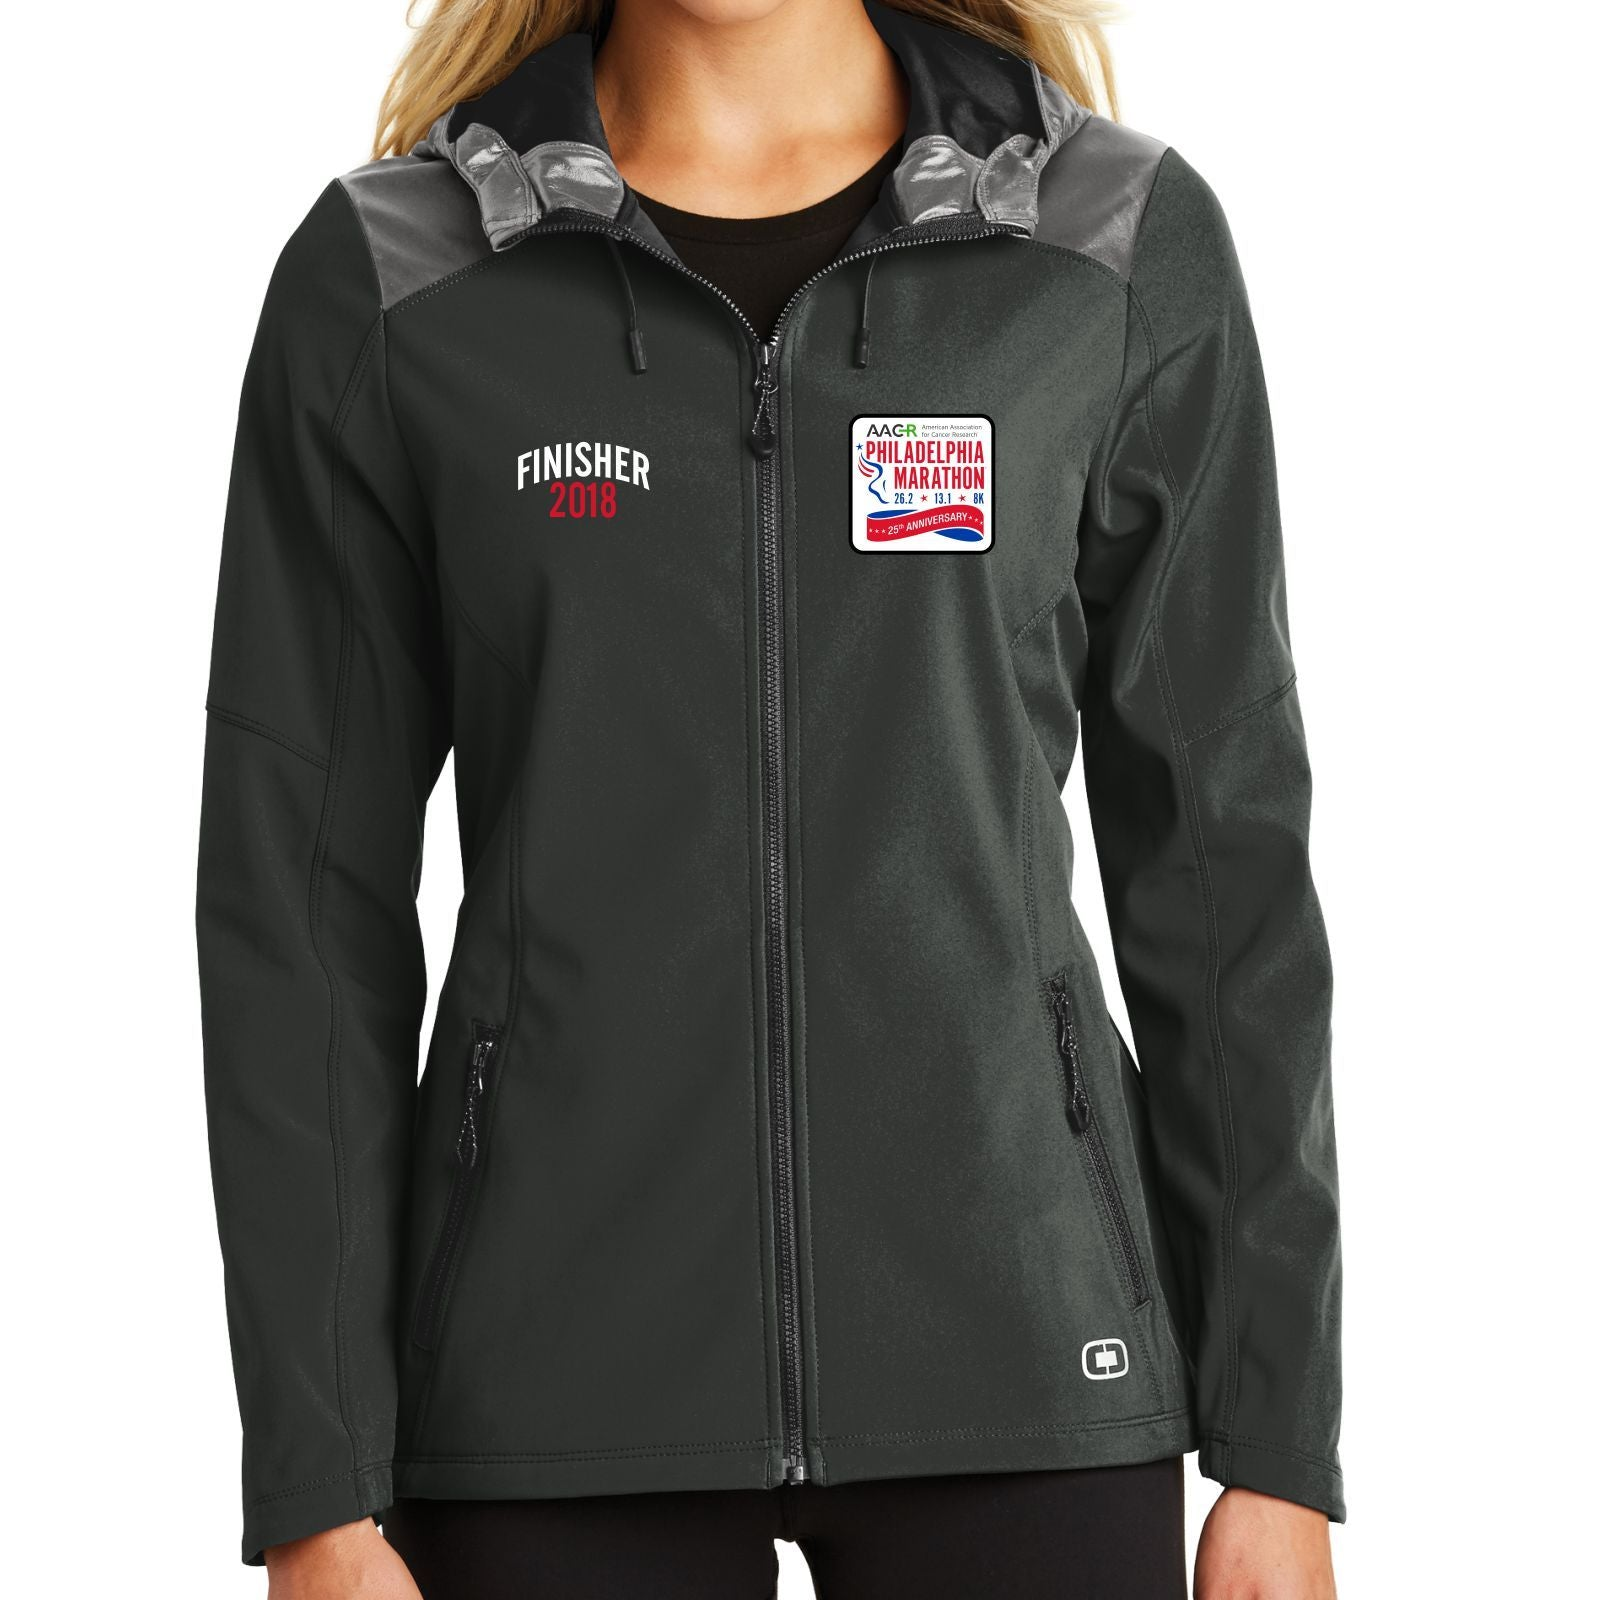 Dietz & Watson Philadelphia Half Marathon: 'Finisher LCE 25th Anniversary' Women's Soft-Shell Hooded Full Zip Jacket - Black